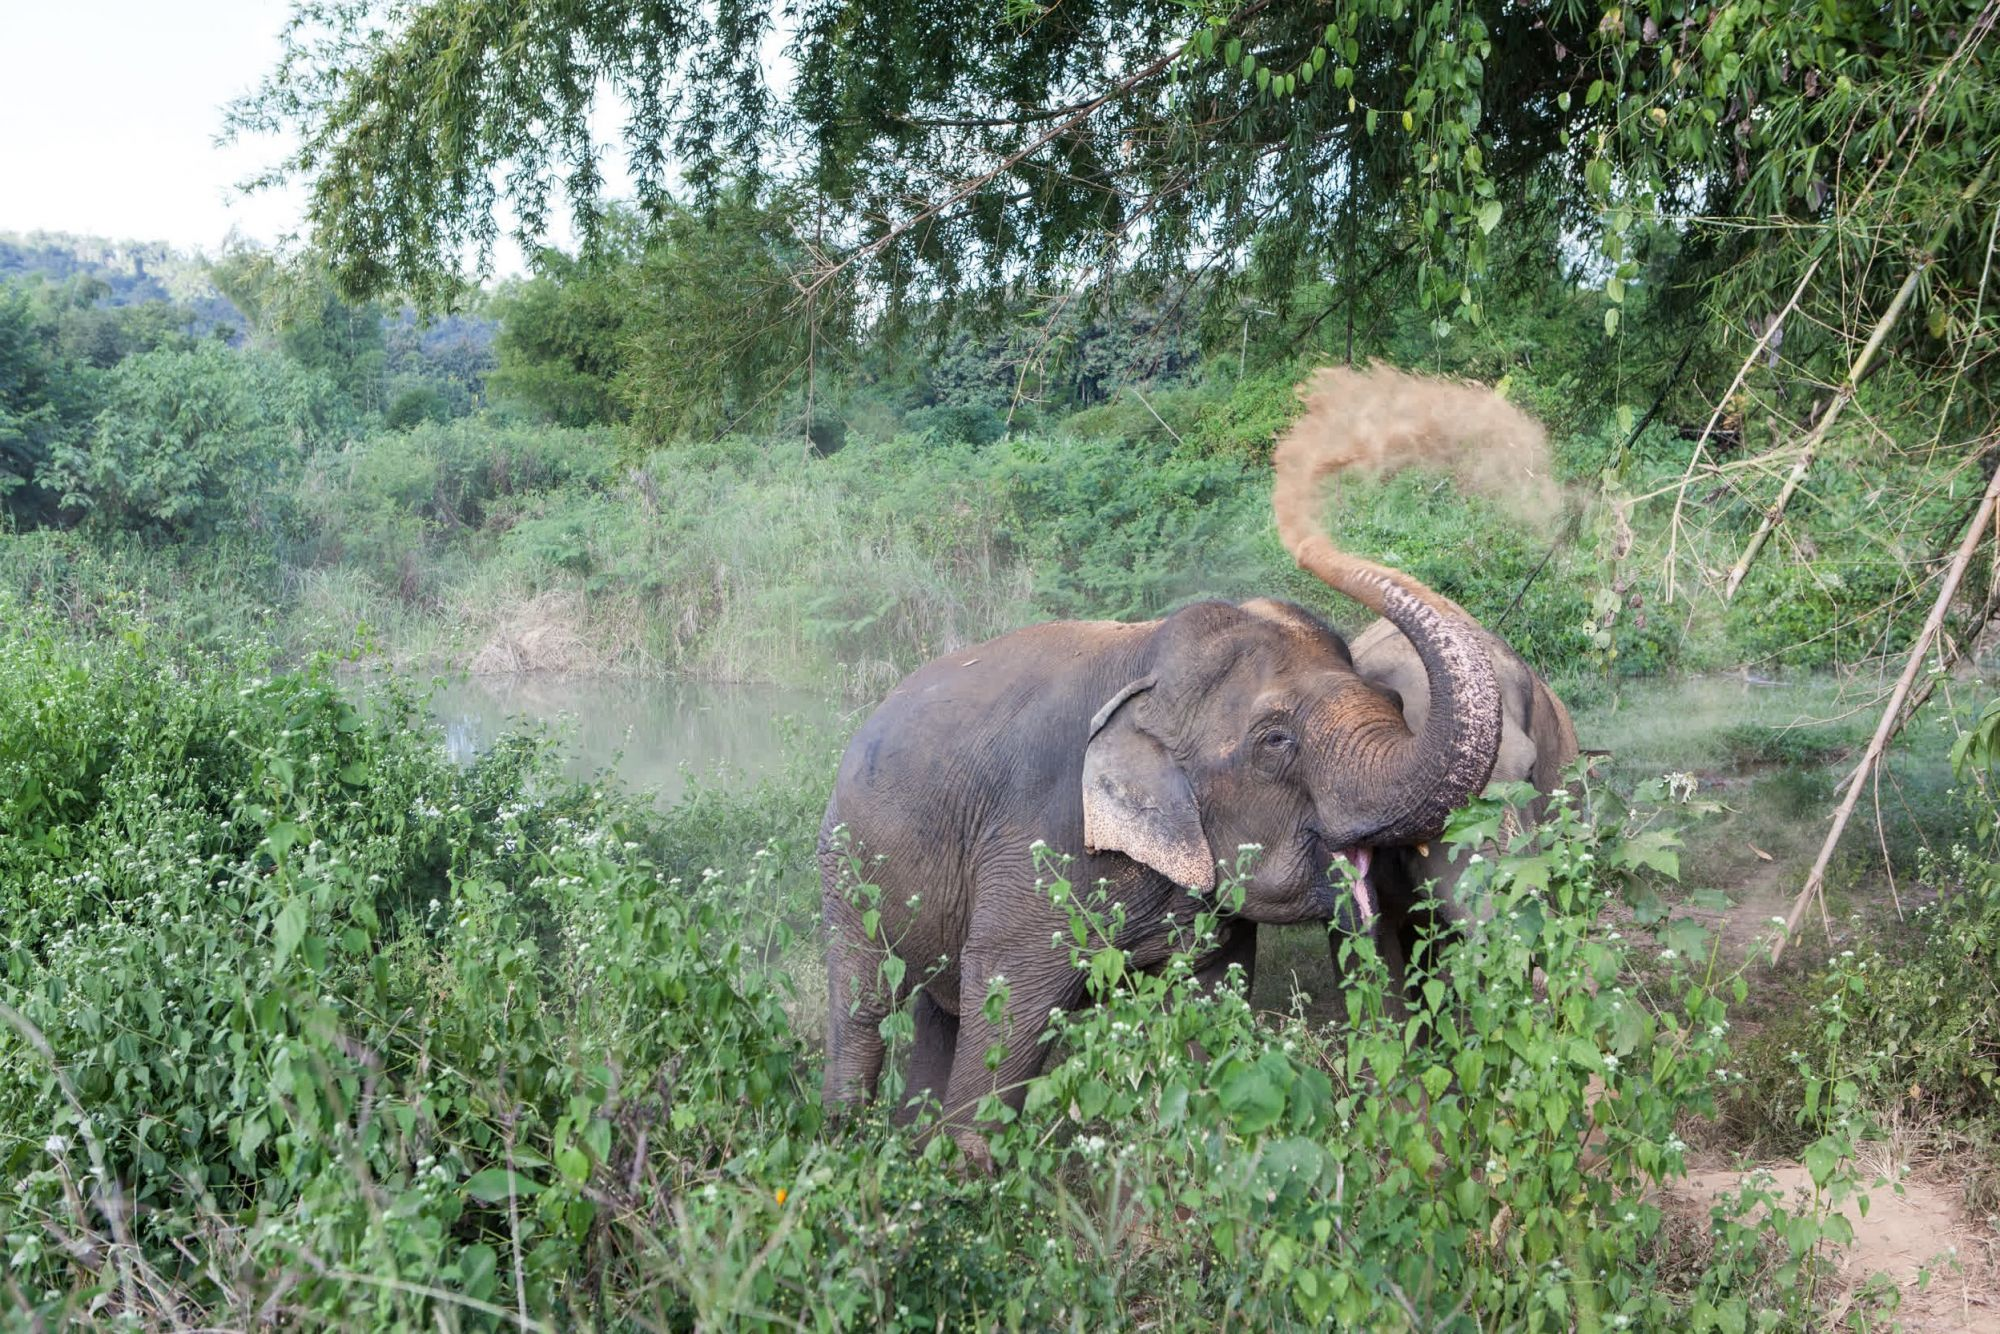 Elephant friendly venues:  Better for elephants and people